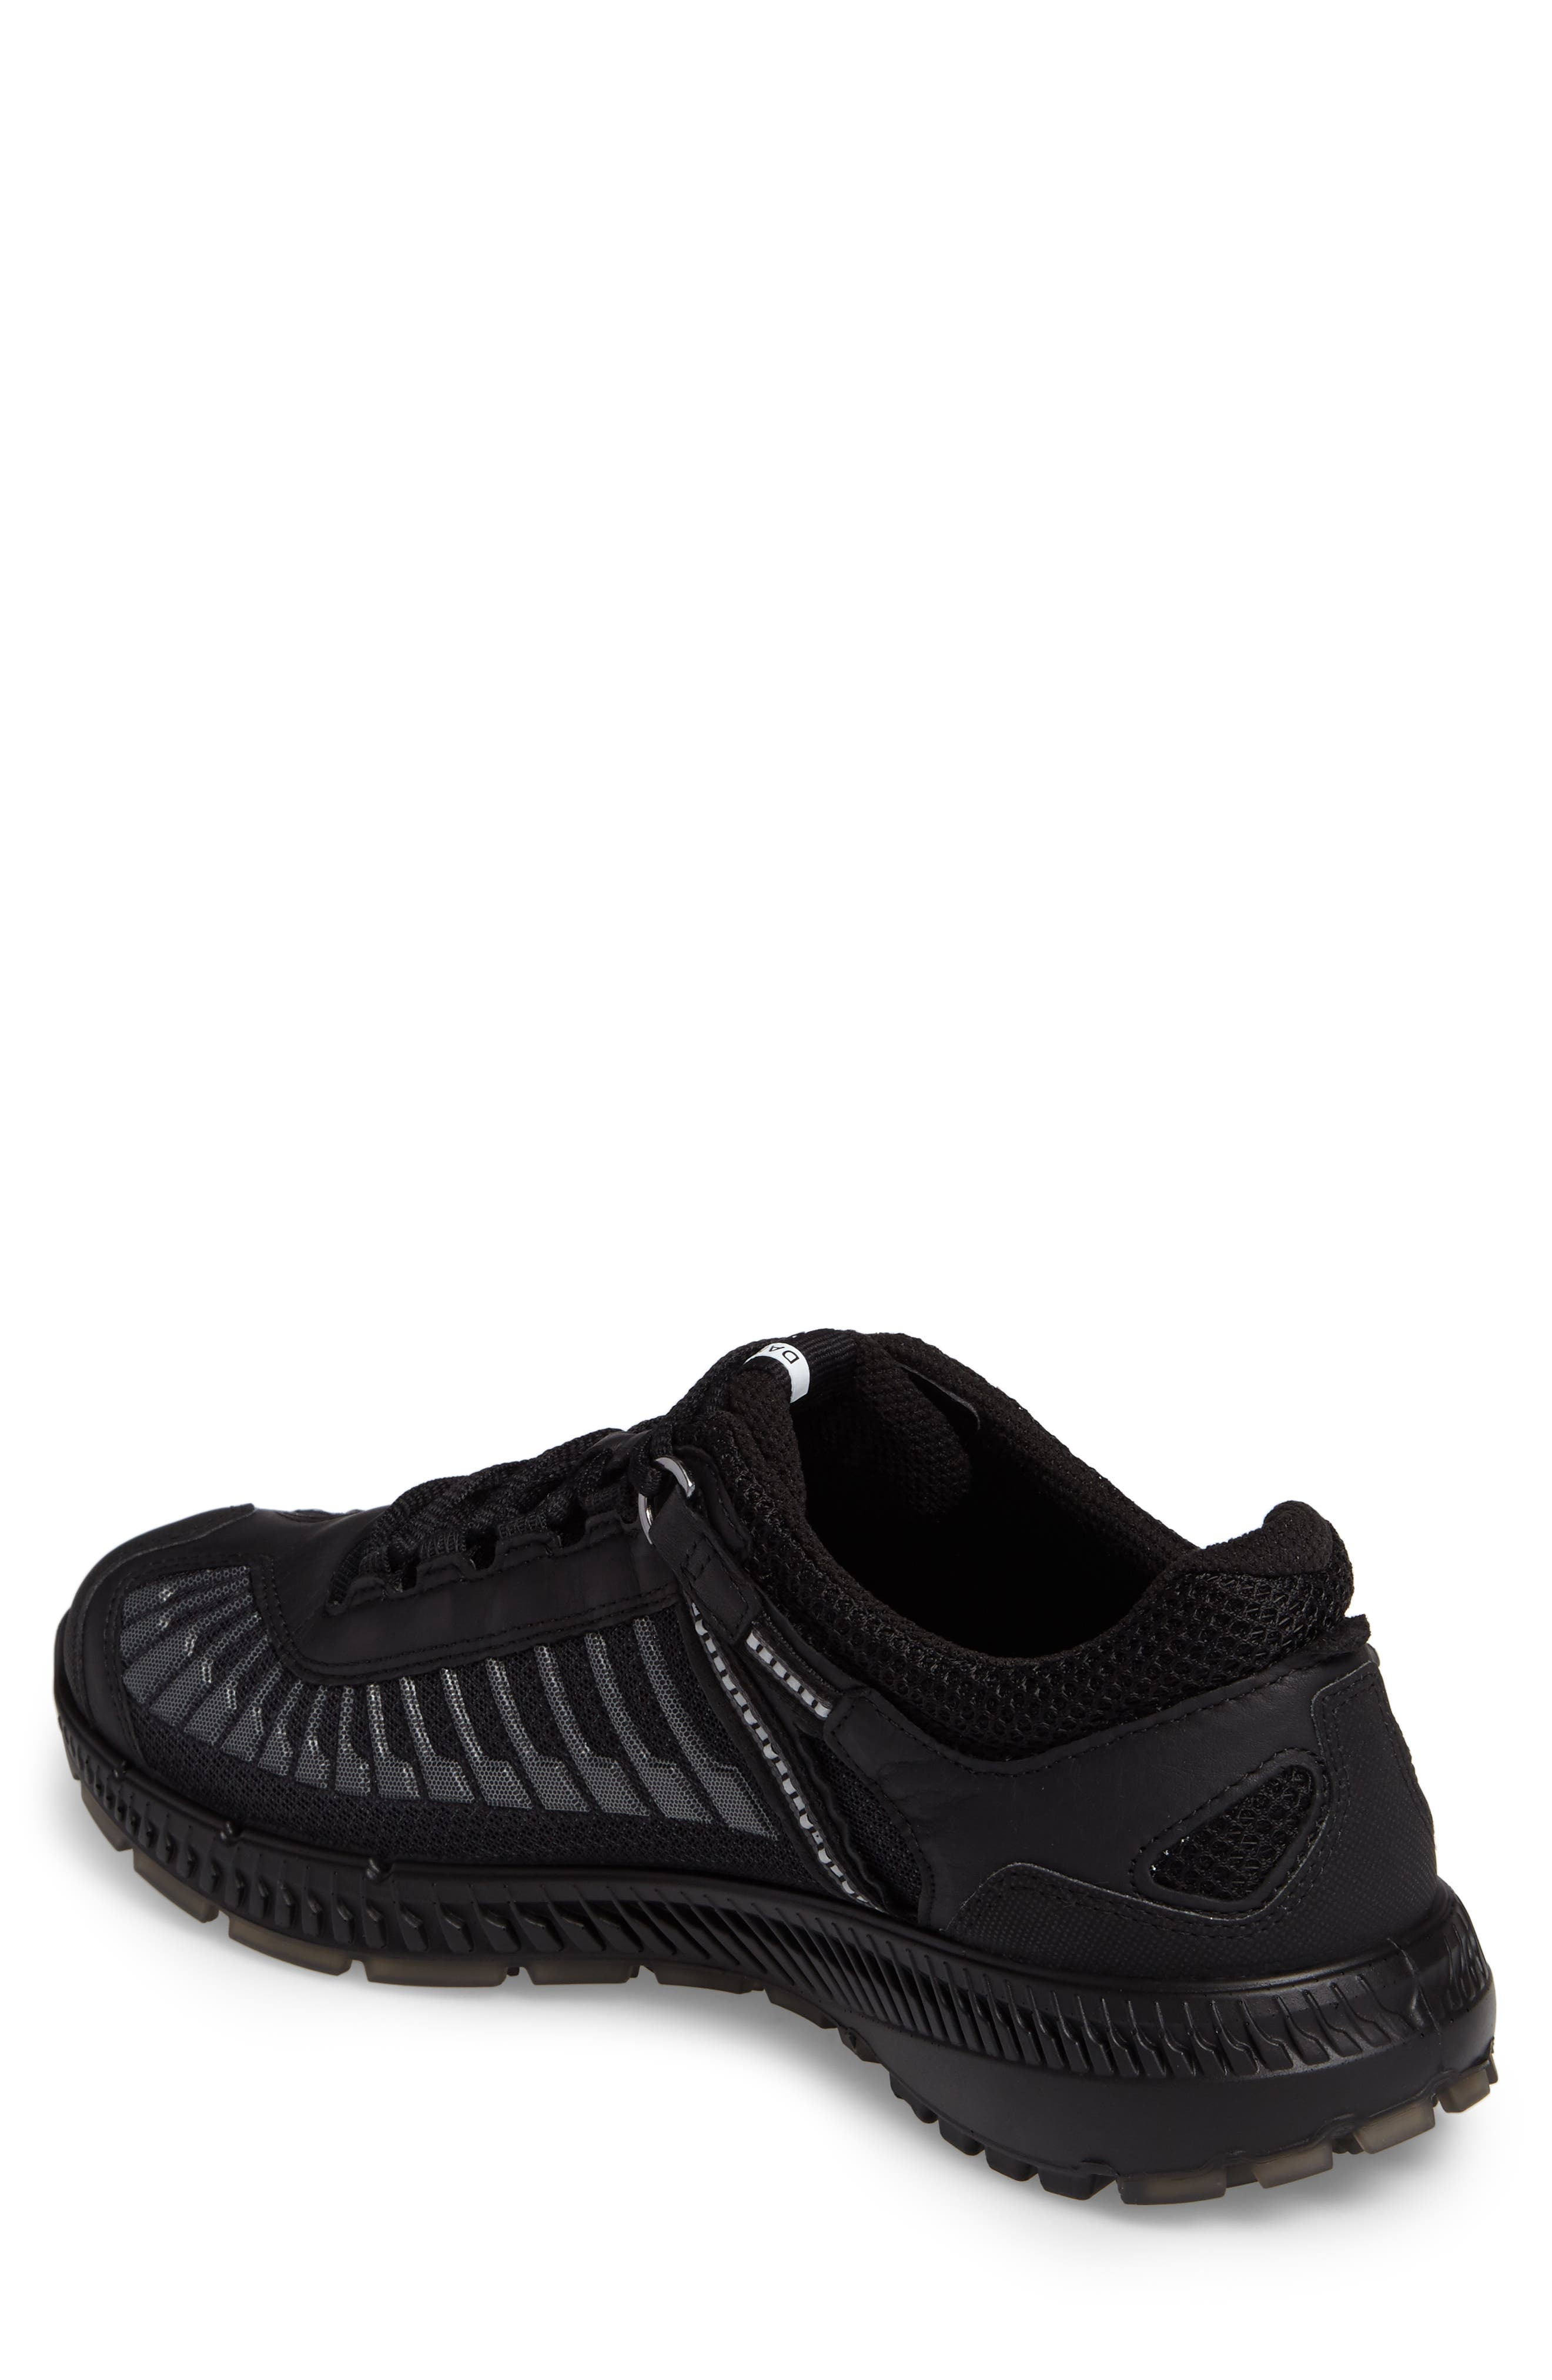 Intrinsic TR Run Sneaker,                             Alternate thumbnail 2, color,                             001